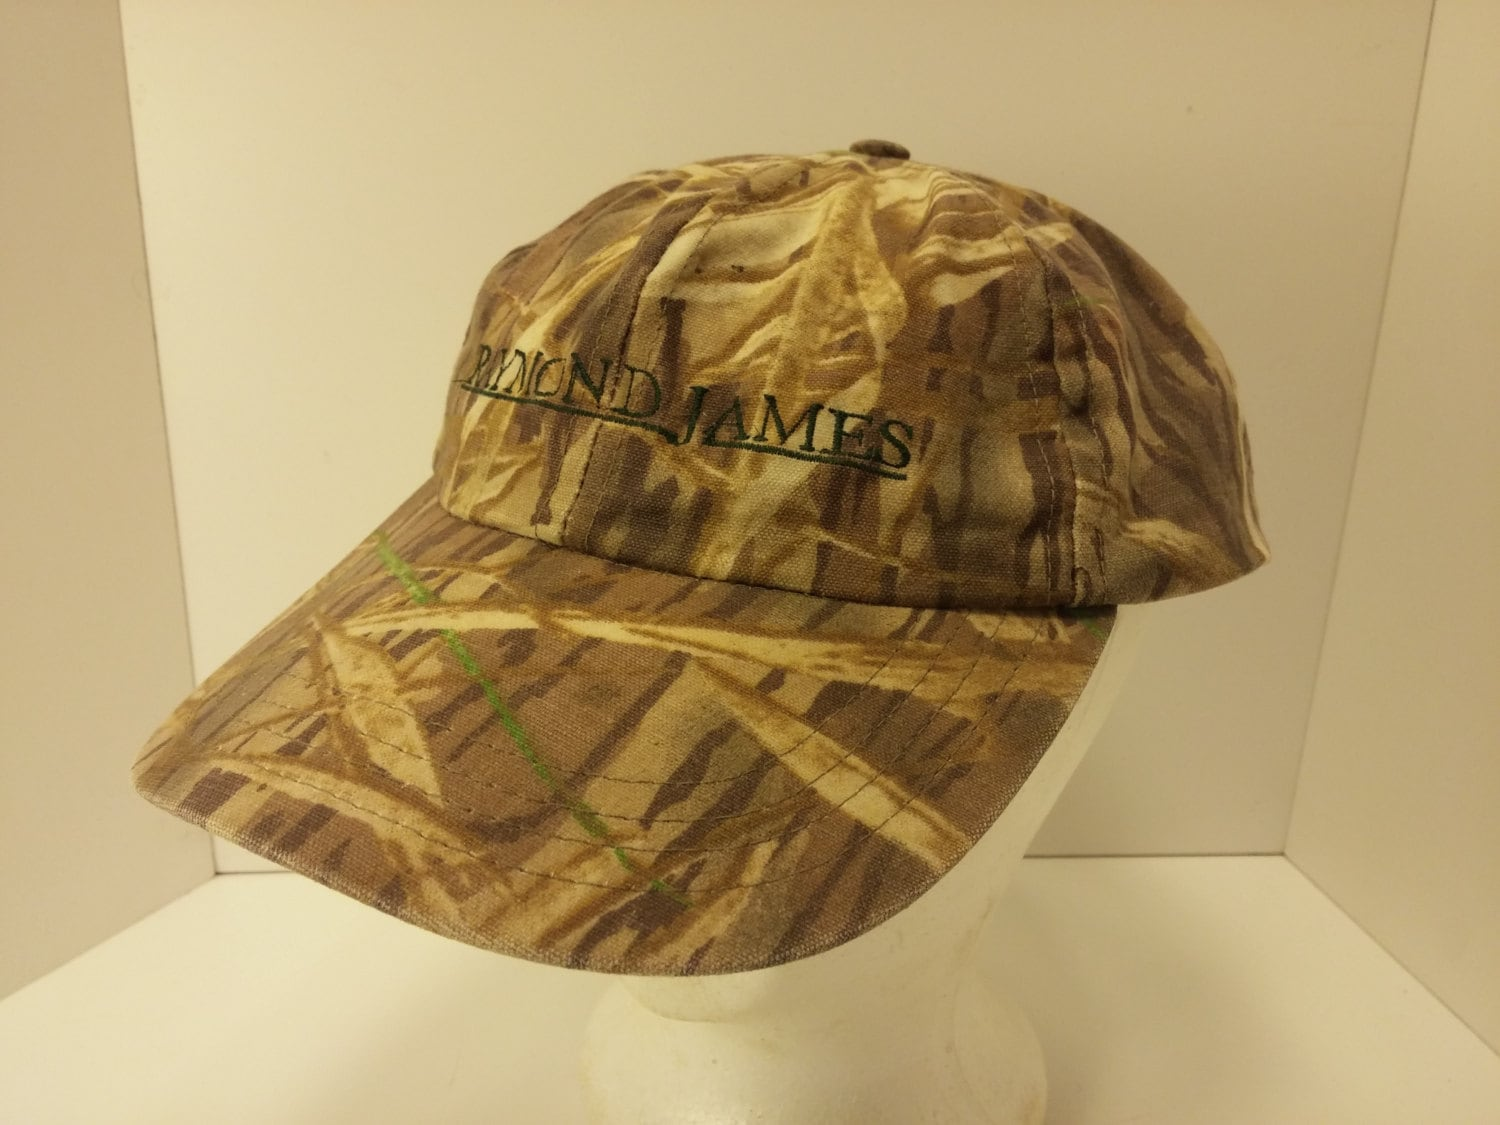 Vintage 1990s Mcalister Camouflage Hunters Ball Cap Waxed